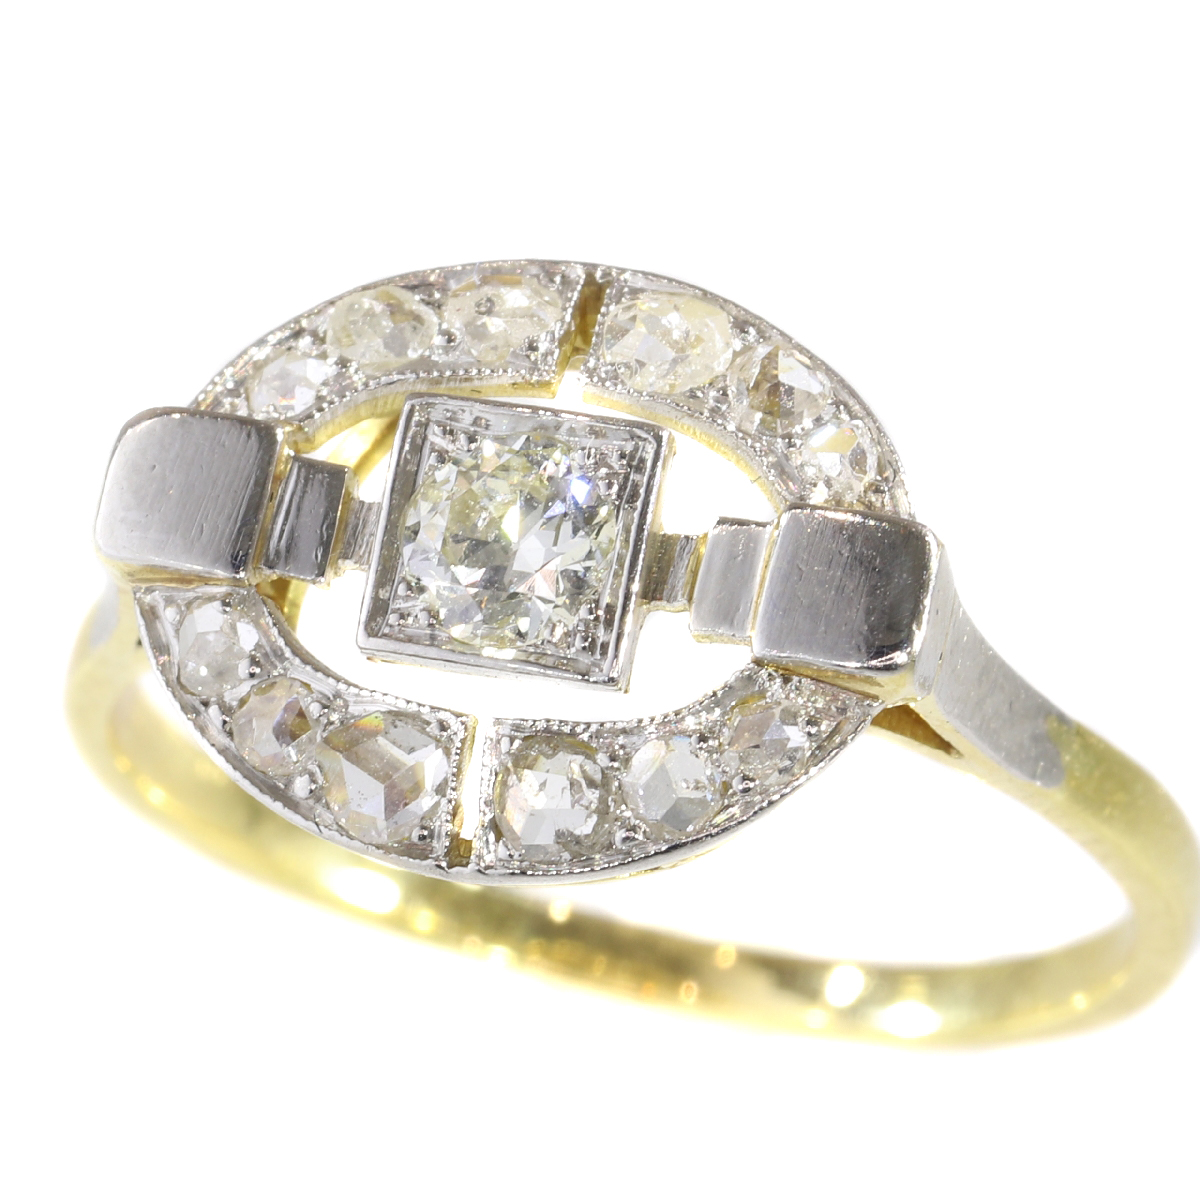 Art Deco diamond ring in two tone gold